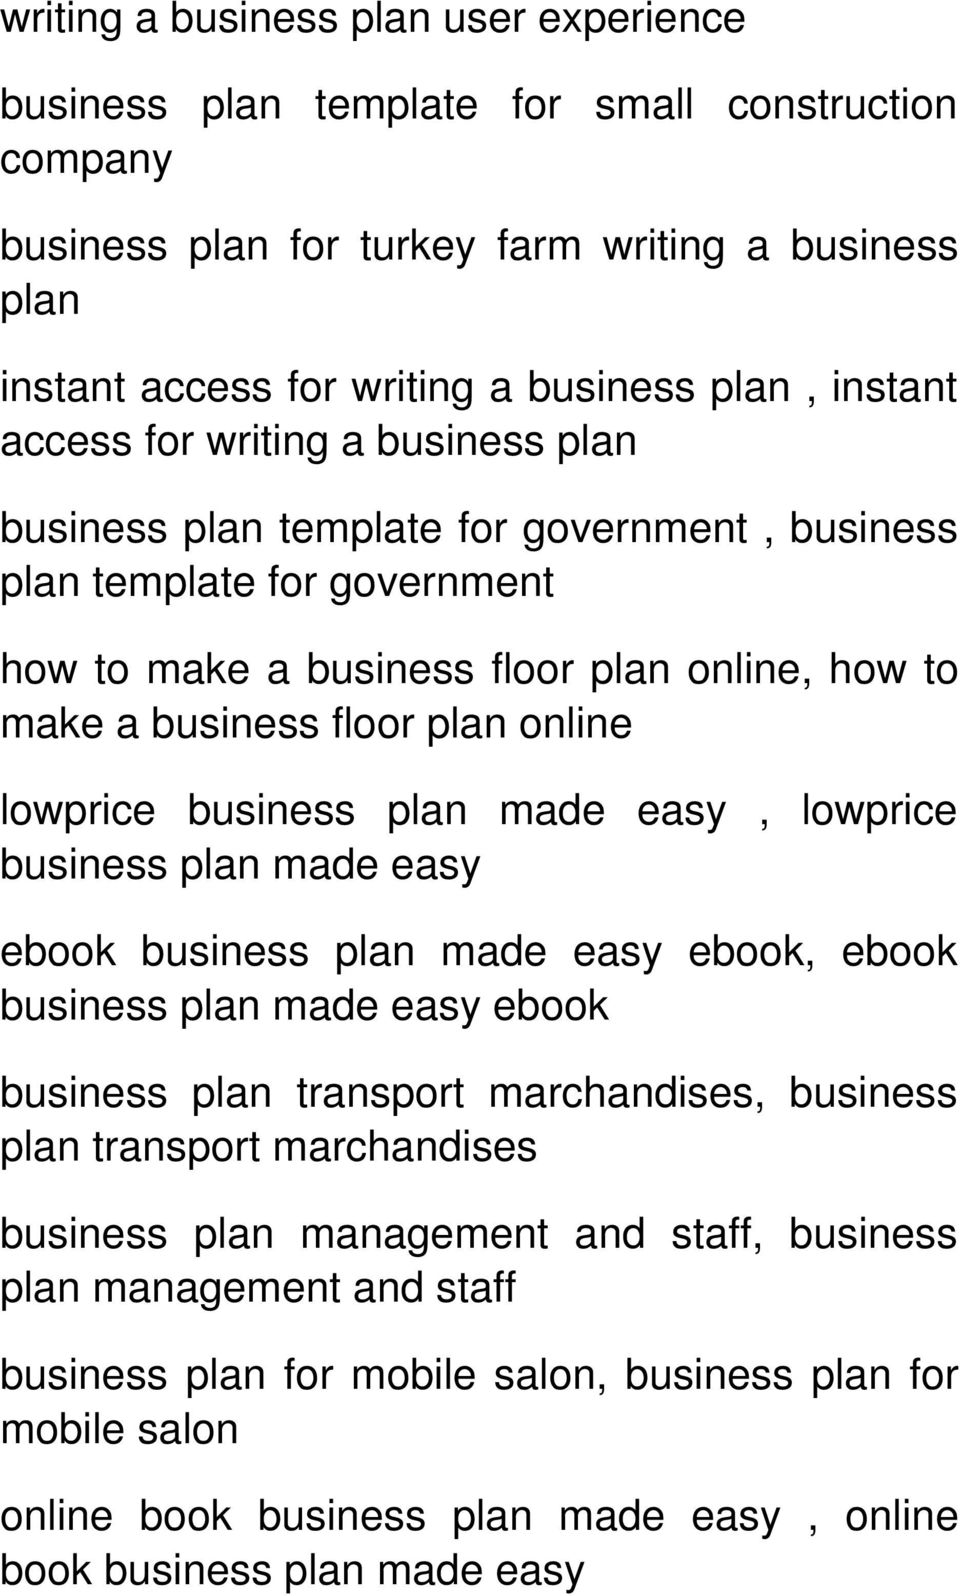 lowprice business plan made easy, lowprice business plan made easy ebook business plan made easy ebook, ebook business plan made easy ebook business plan transport marchandises, business plan